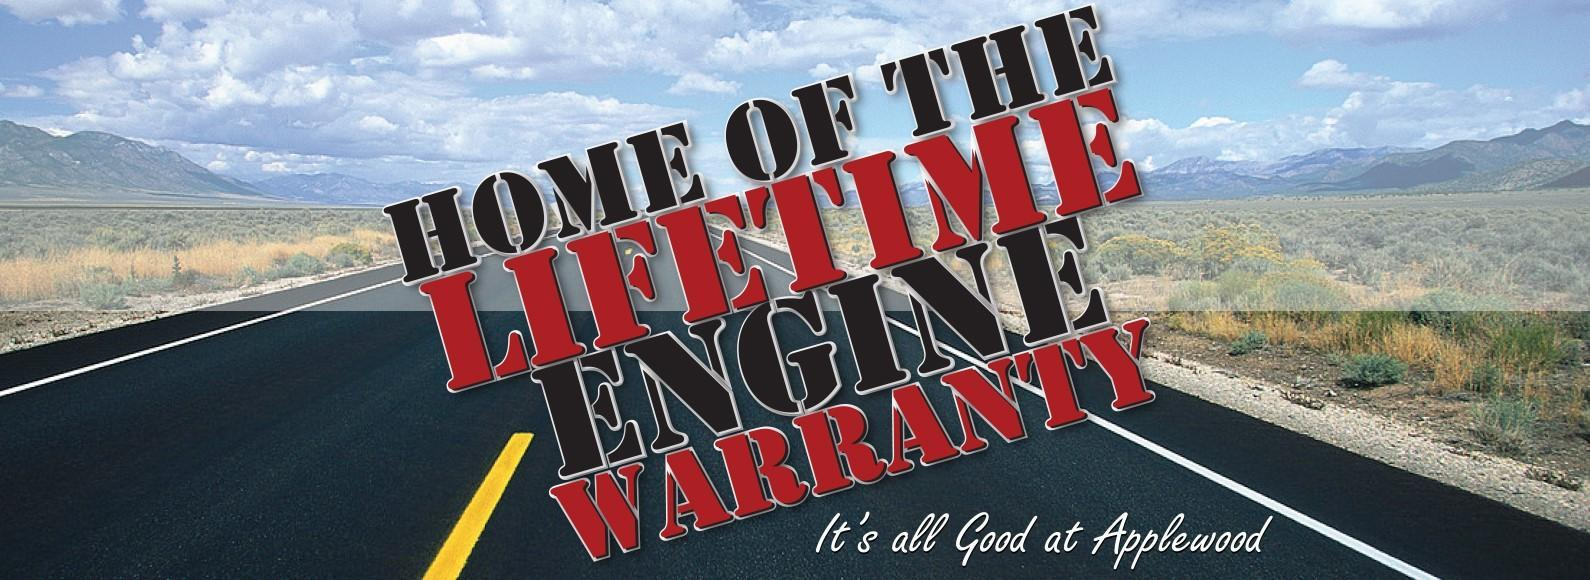 Applewood Ford Home of the Lifetime Engine Warranty